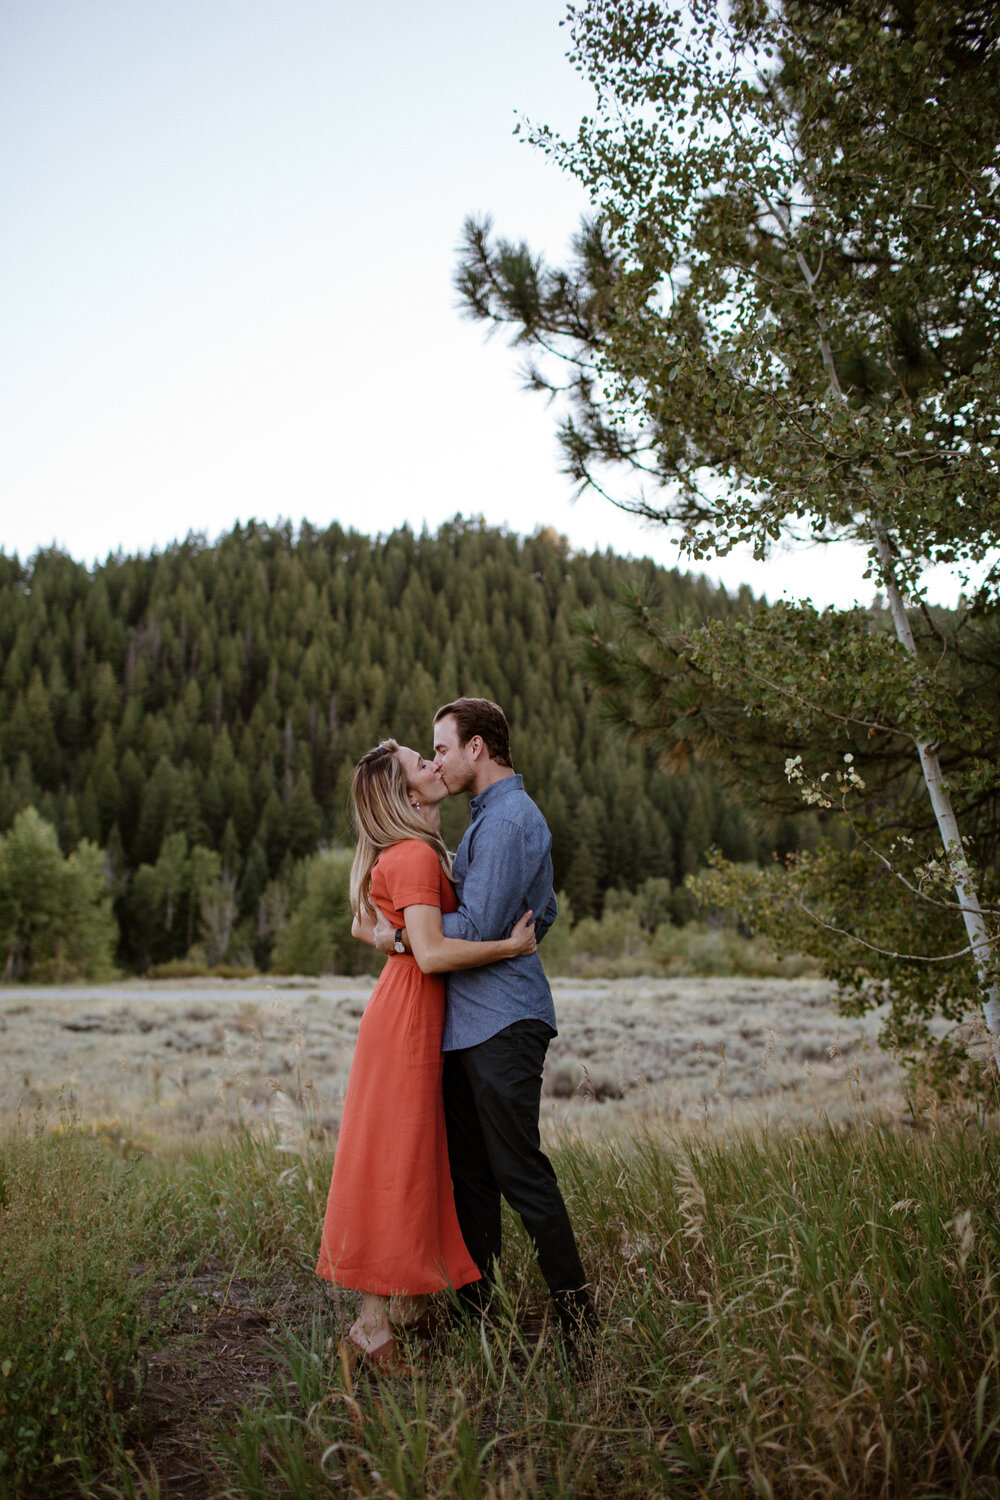 sun-valley-engagement-photos-christinemarie-31.jpg